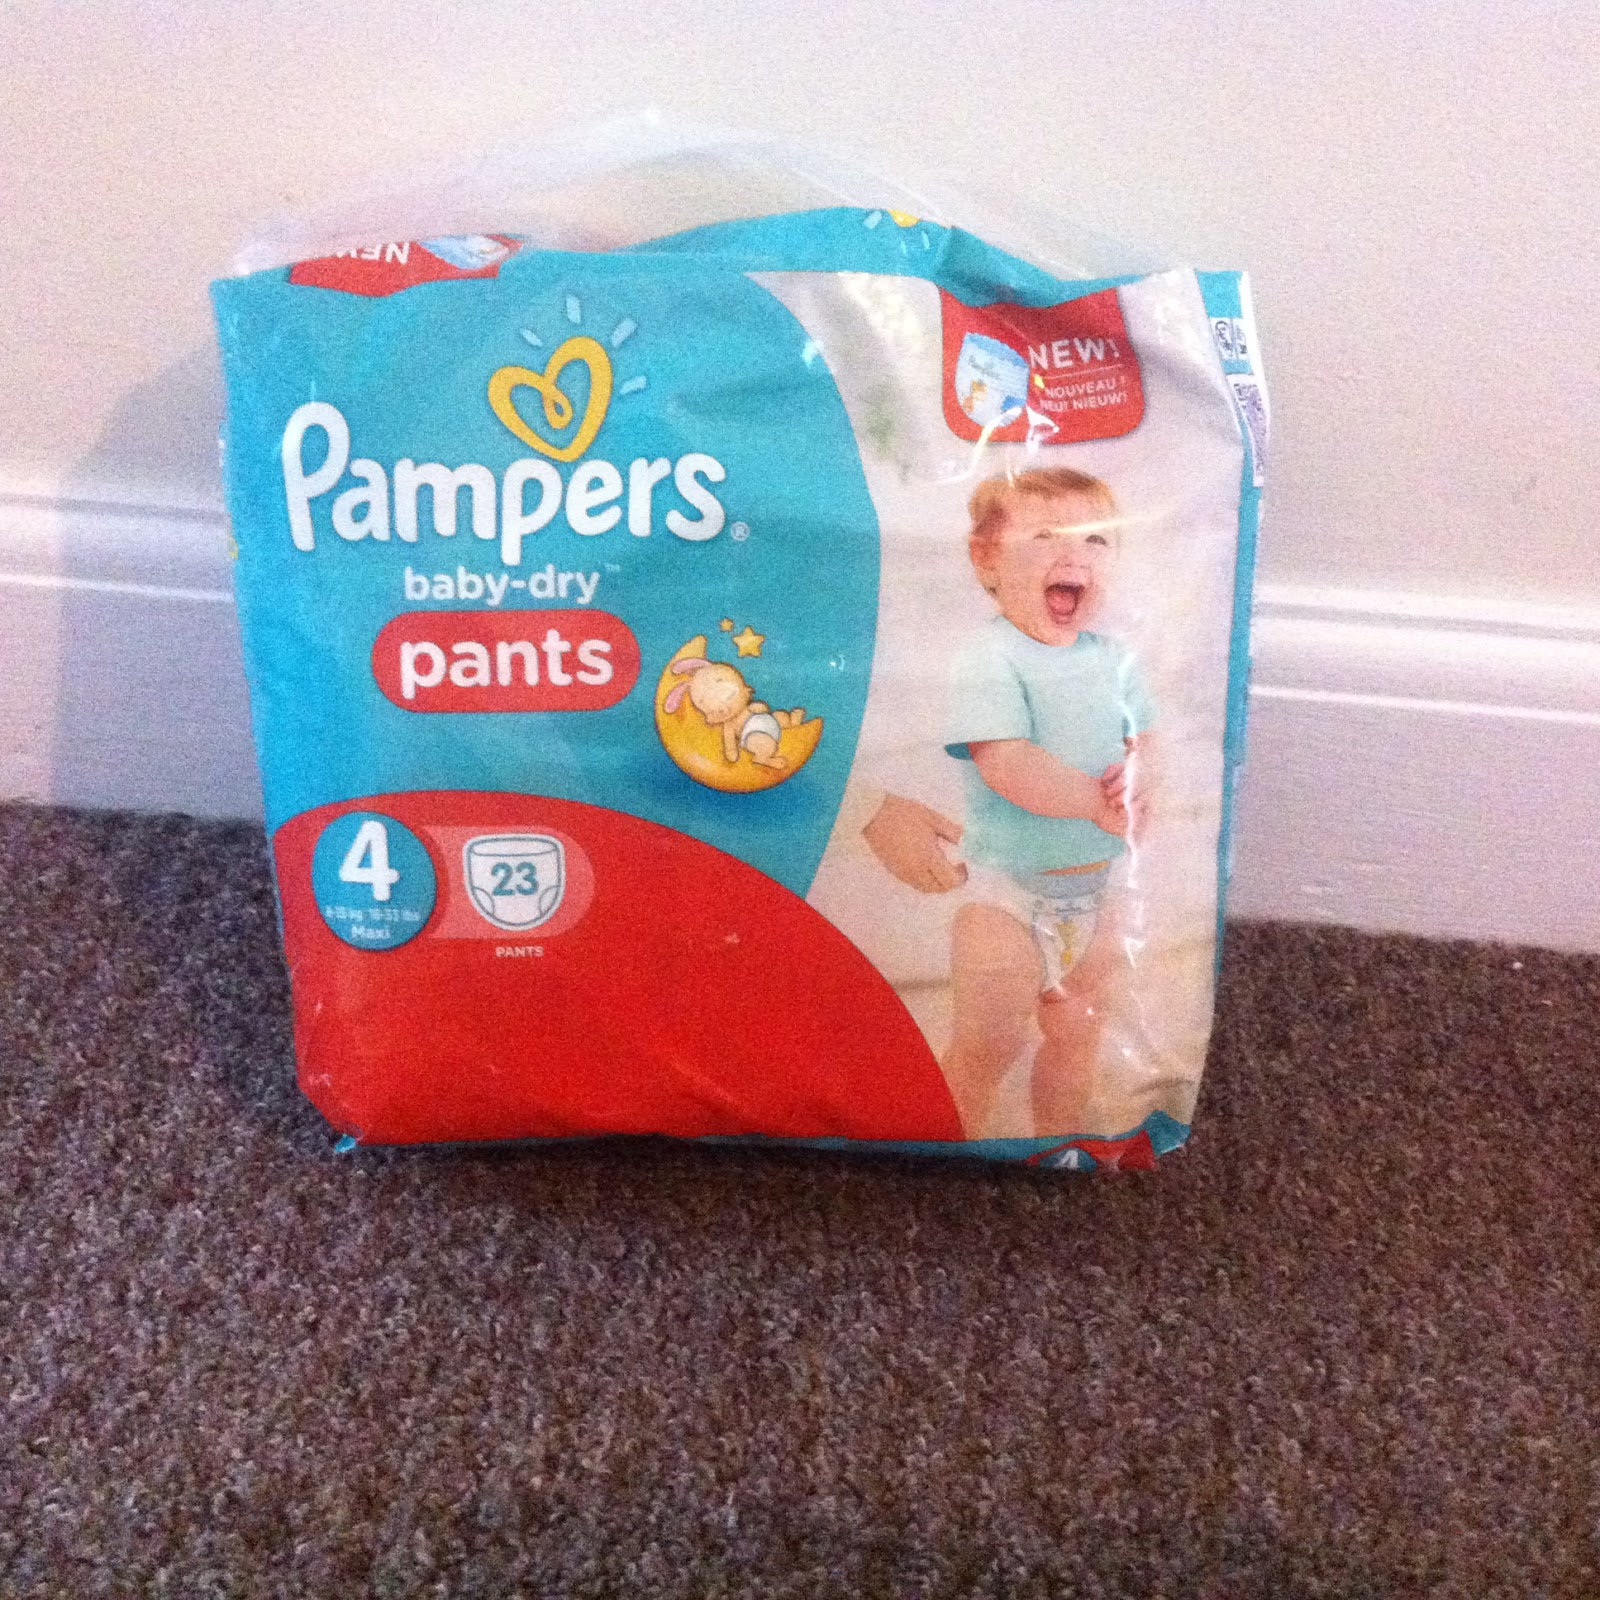 Get $2 off one bag Pampers Easy Ups Training Underwear or UnderJams Absorbent Night Wear. Excludes trial/travel size. Limit ONE coupon per purchase of products and quantities stated.